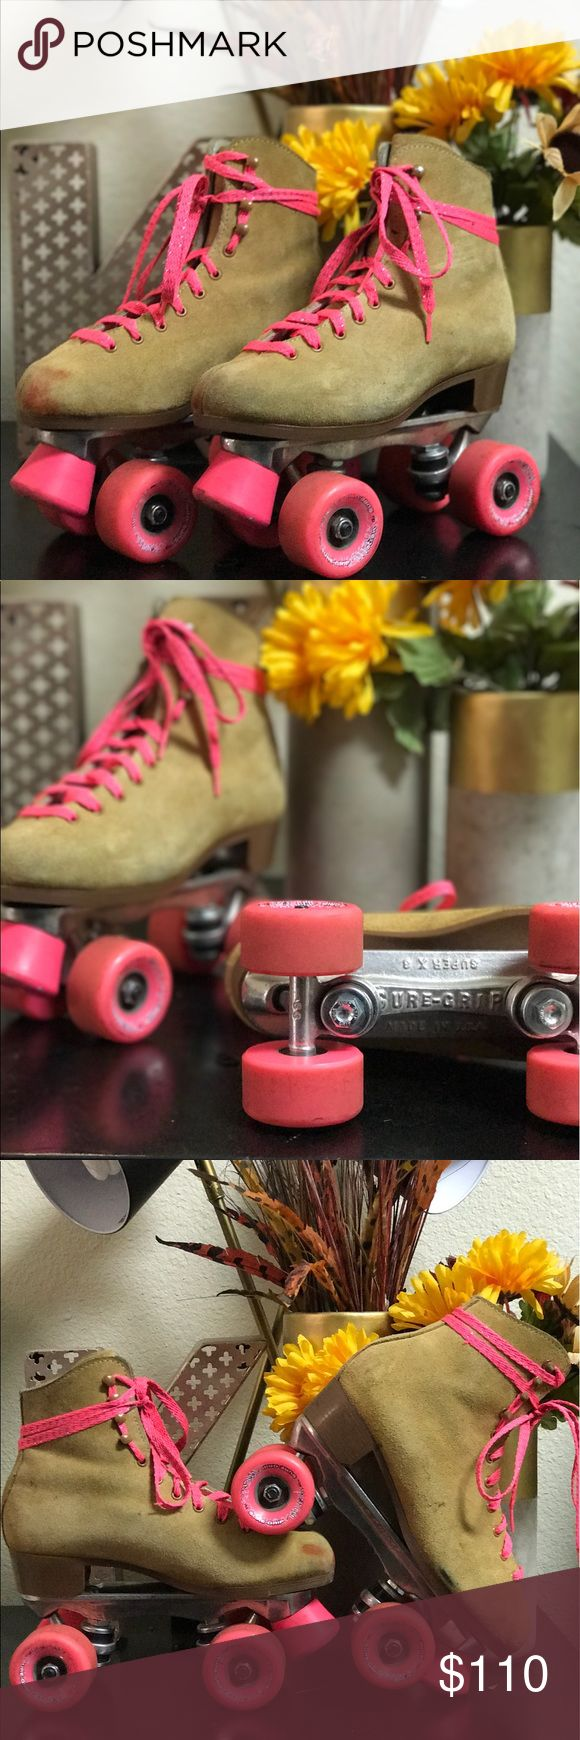 SureGrip Roller Skates Sure Grip Roller Skates -original frame -original wheels -size 7.5 (fits 7.5-8 women's) -new pink laces -worn only a handful of times -willing to negotiate suregrip Other